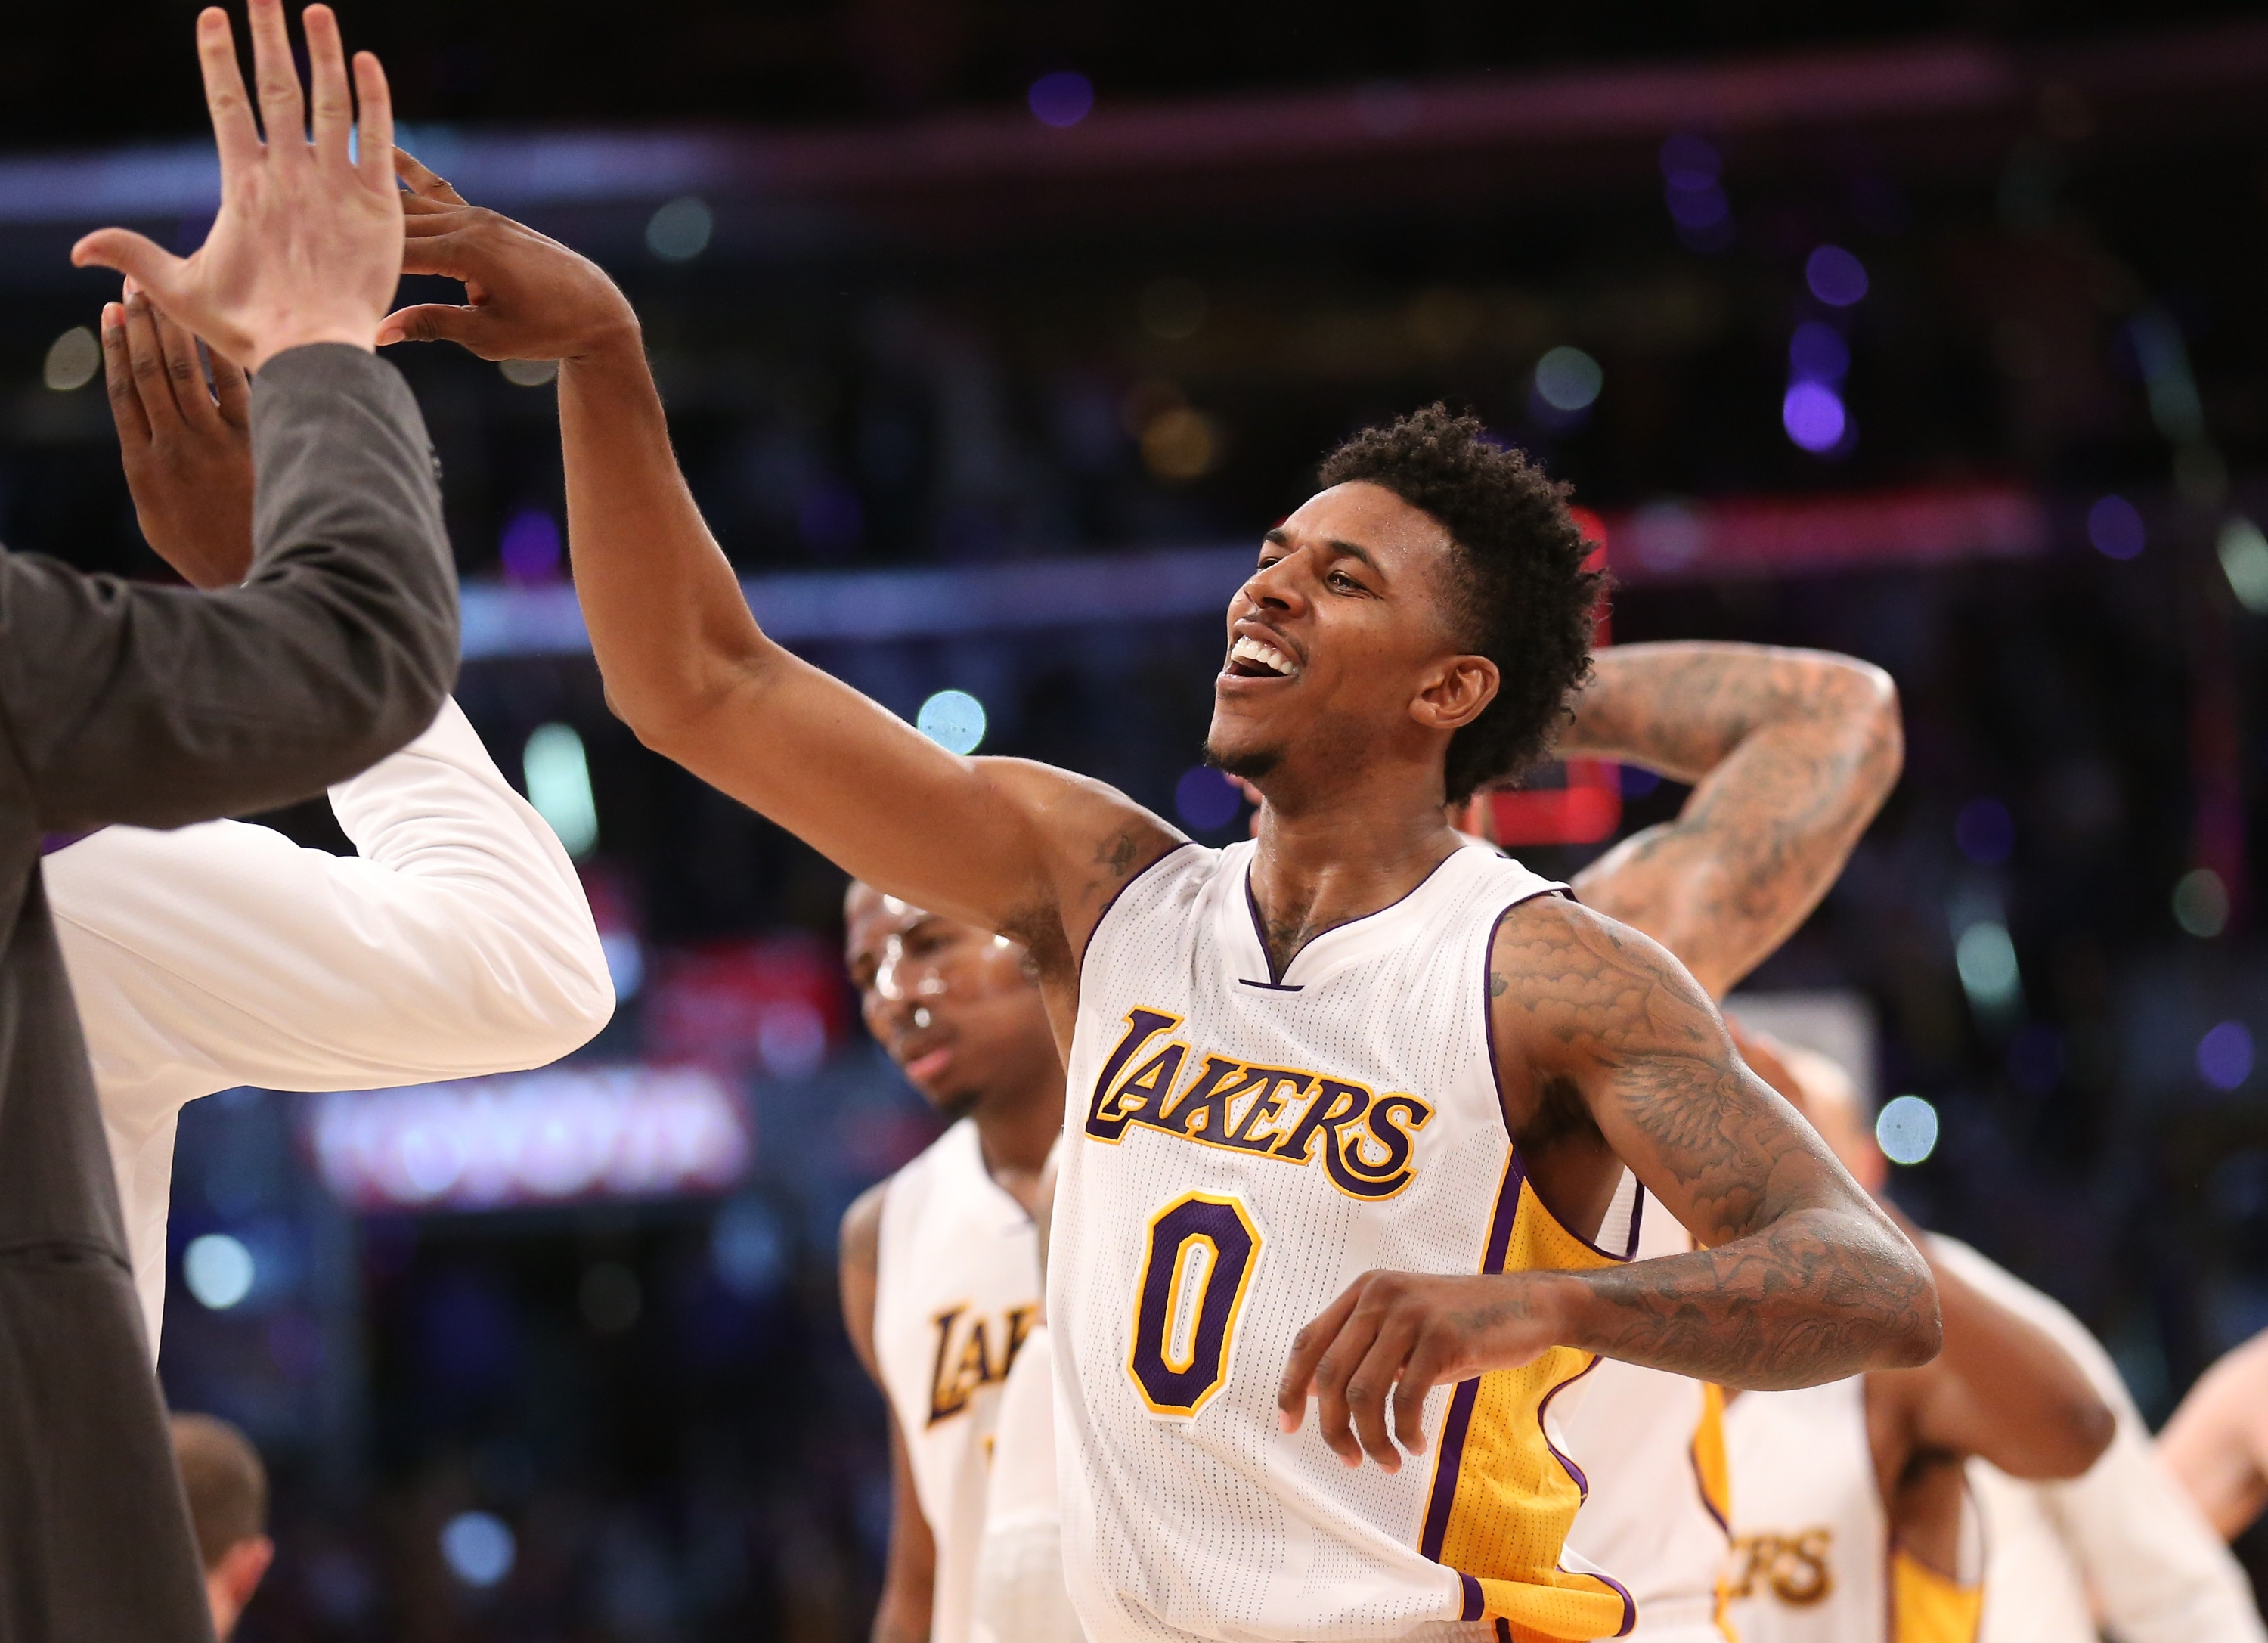 Nick Young celebrates, as is his wont. (Stephen Dunn/Getty Images)